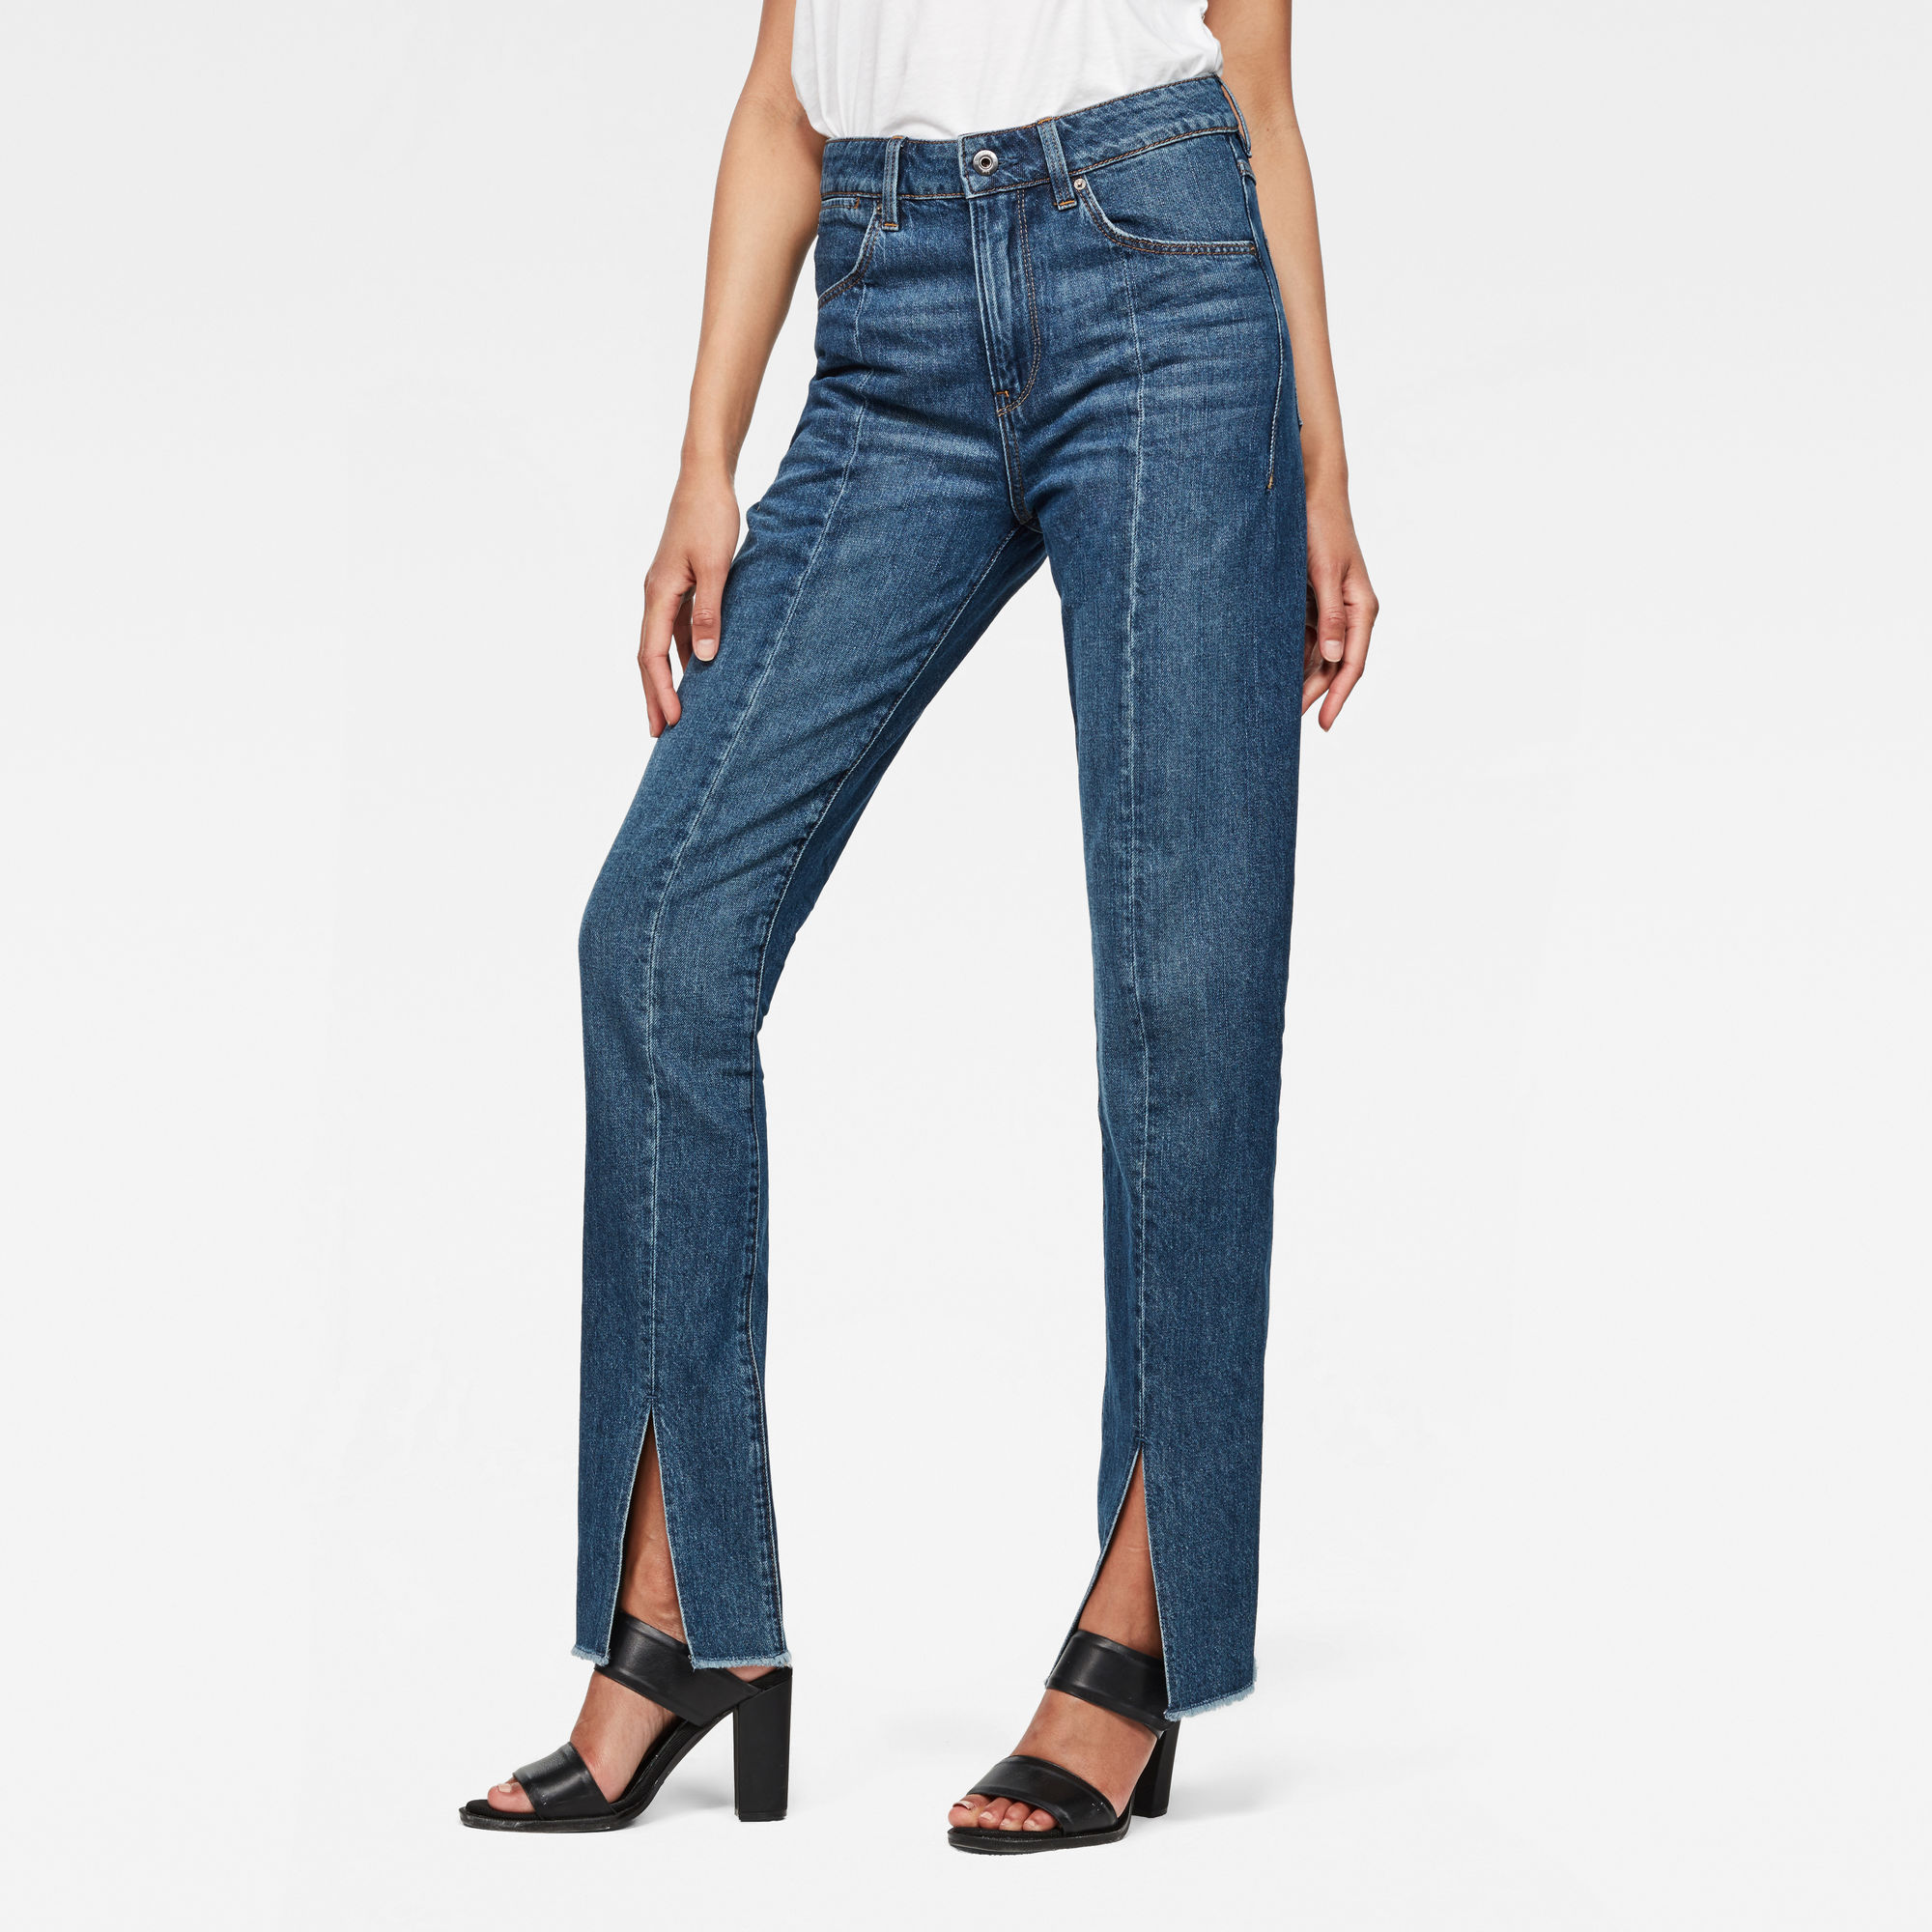 Image of G Star Raw Lanc 3D High waist Straight 90s Ripped Jeans